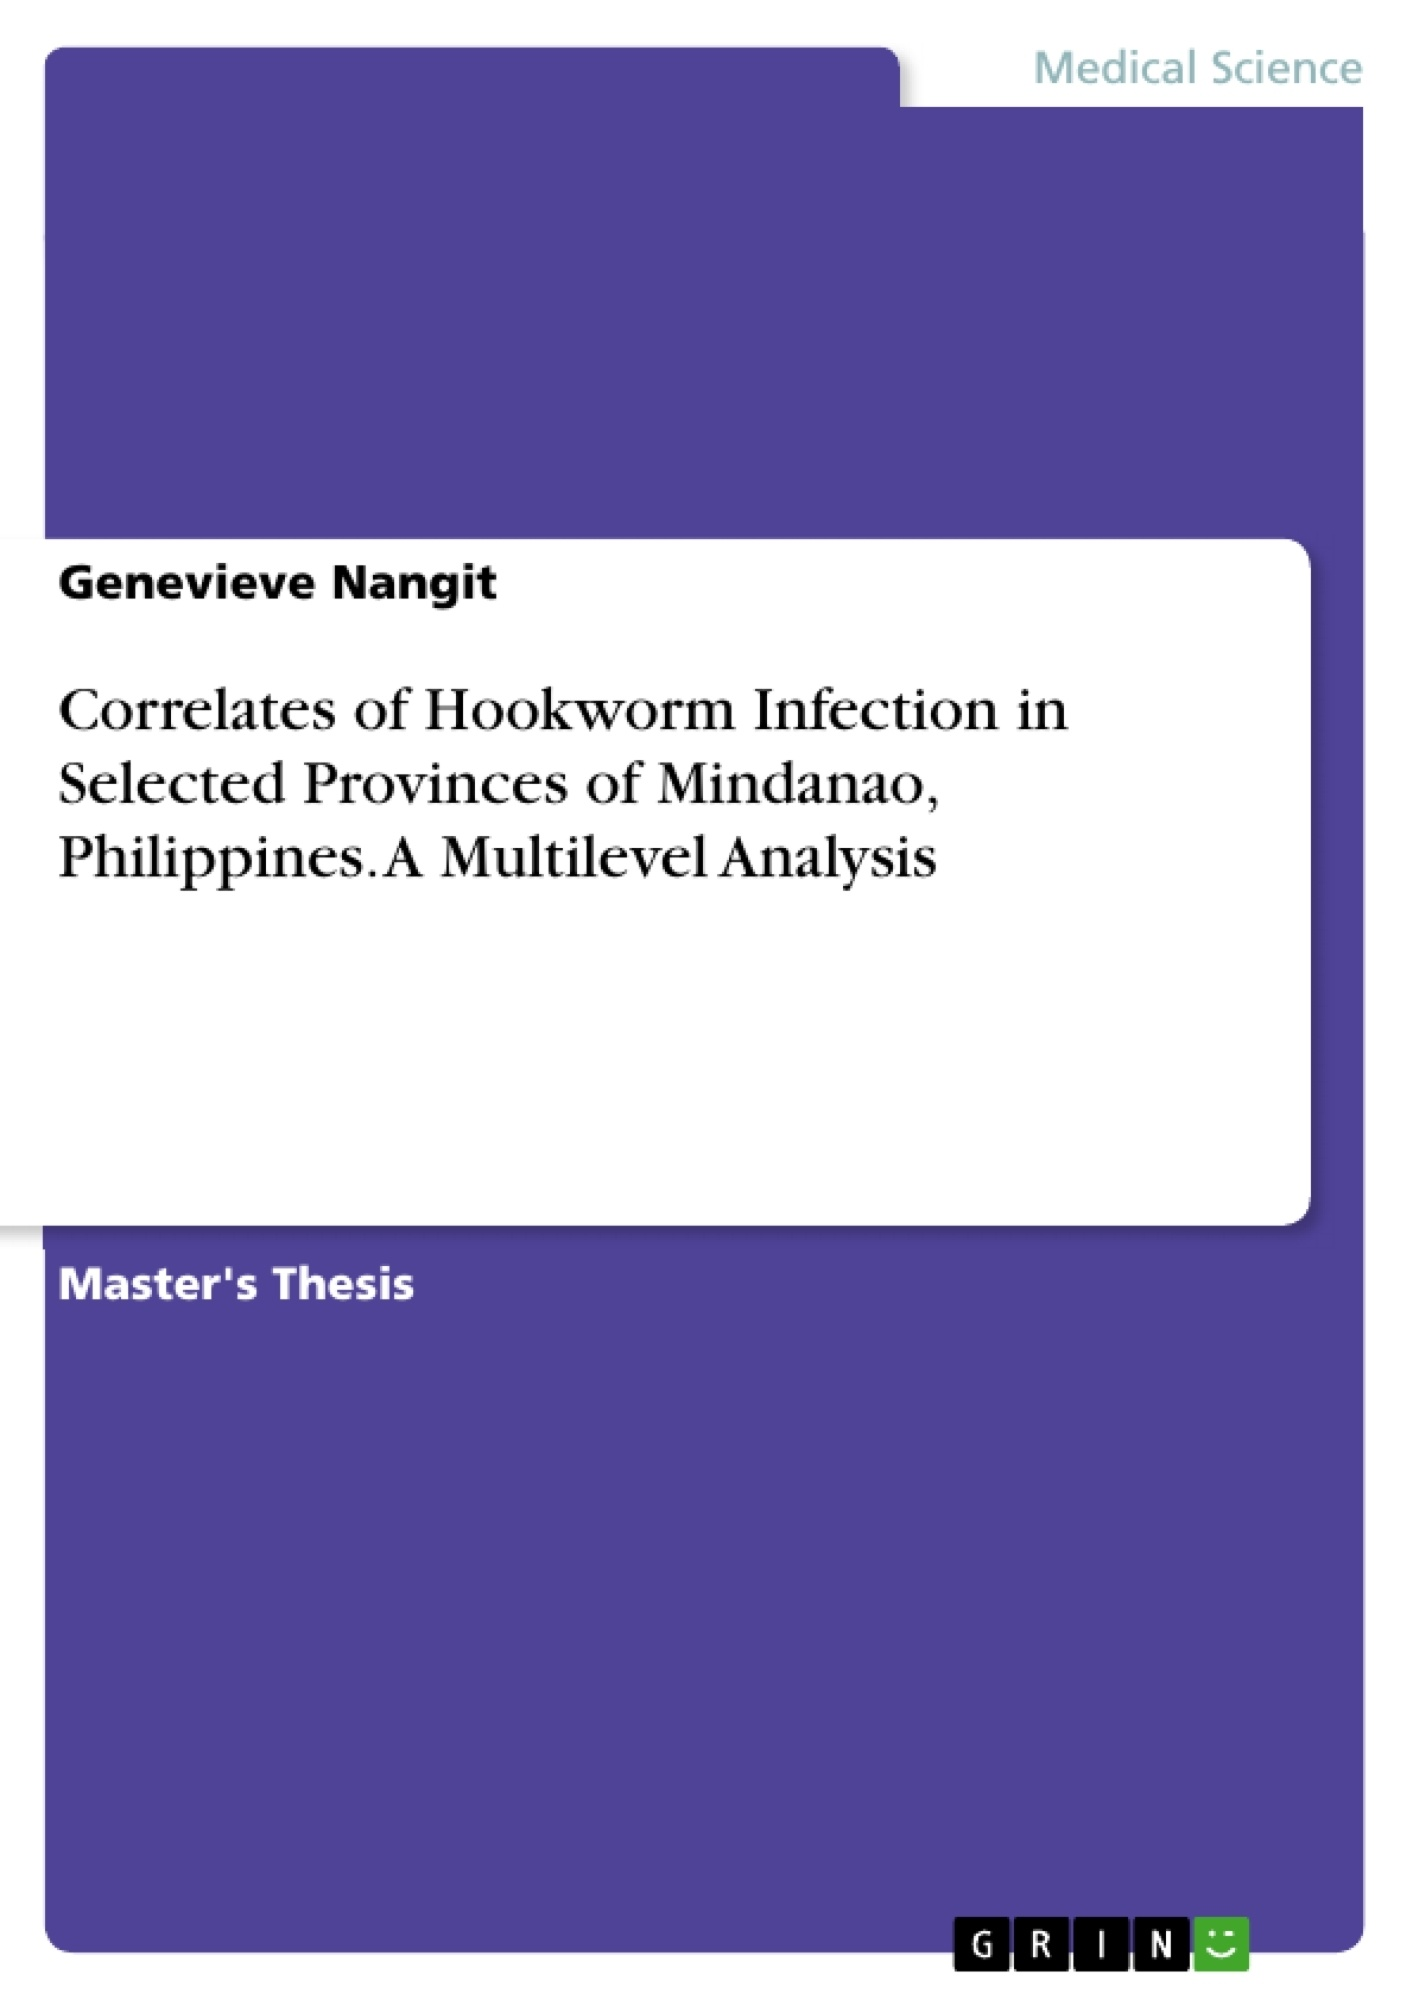 Title: Correlates of Hookworm Infection in Selected Provinces of Mindanao, Philippines. A Multilevel Analysis